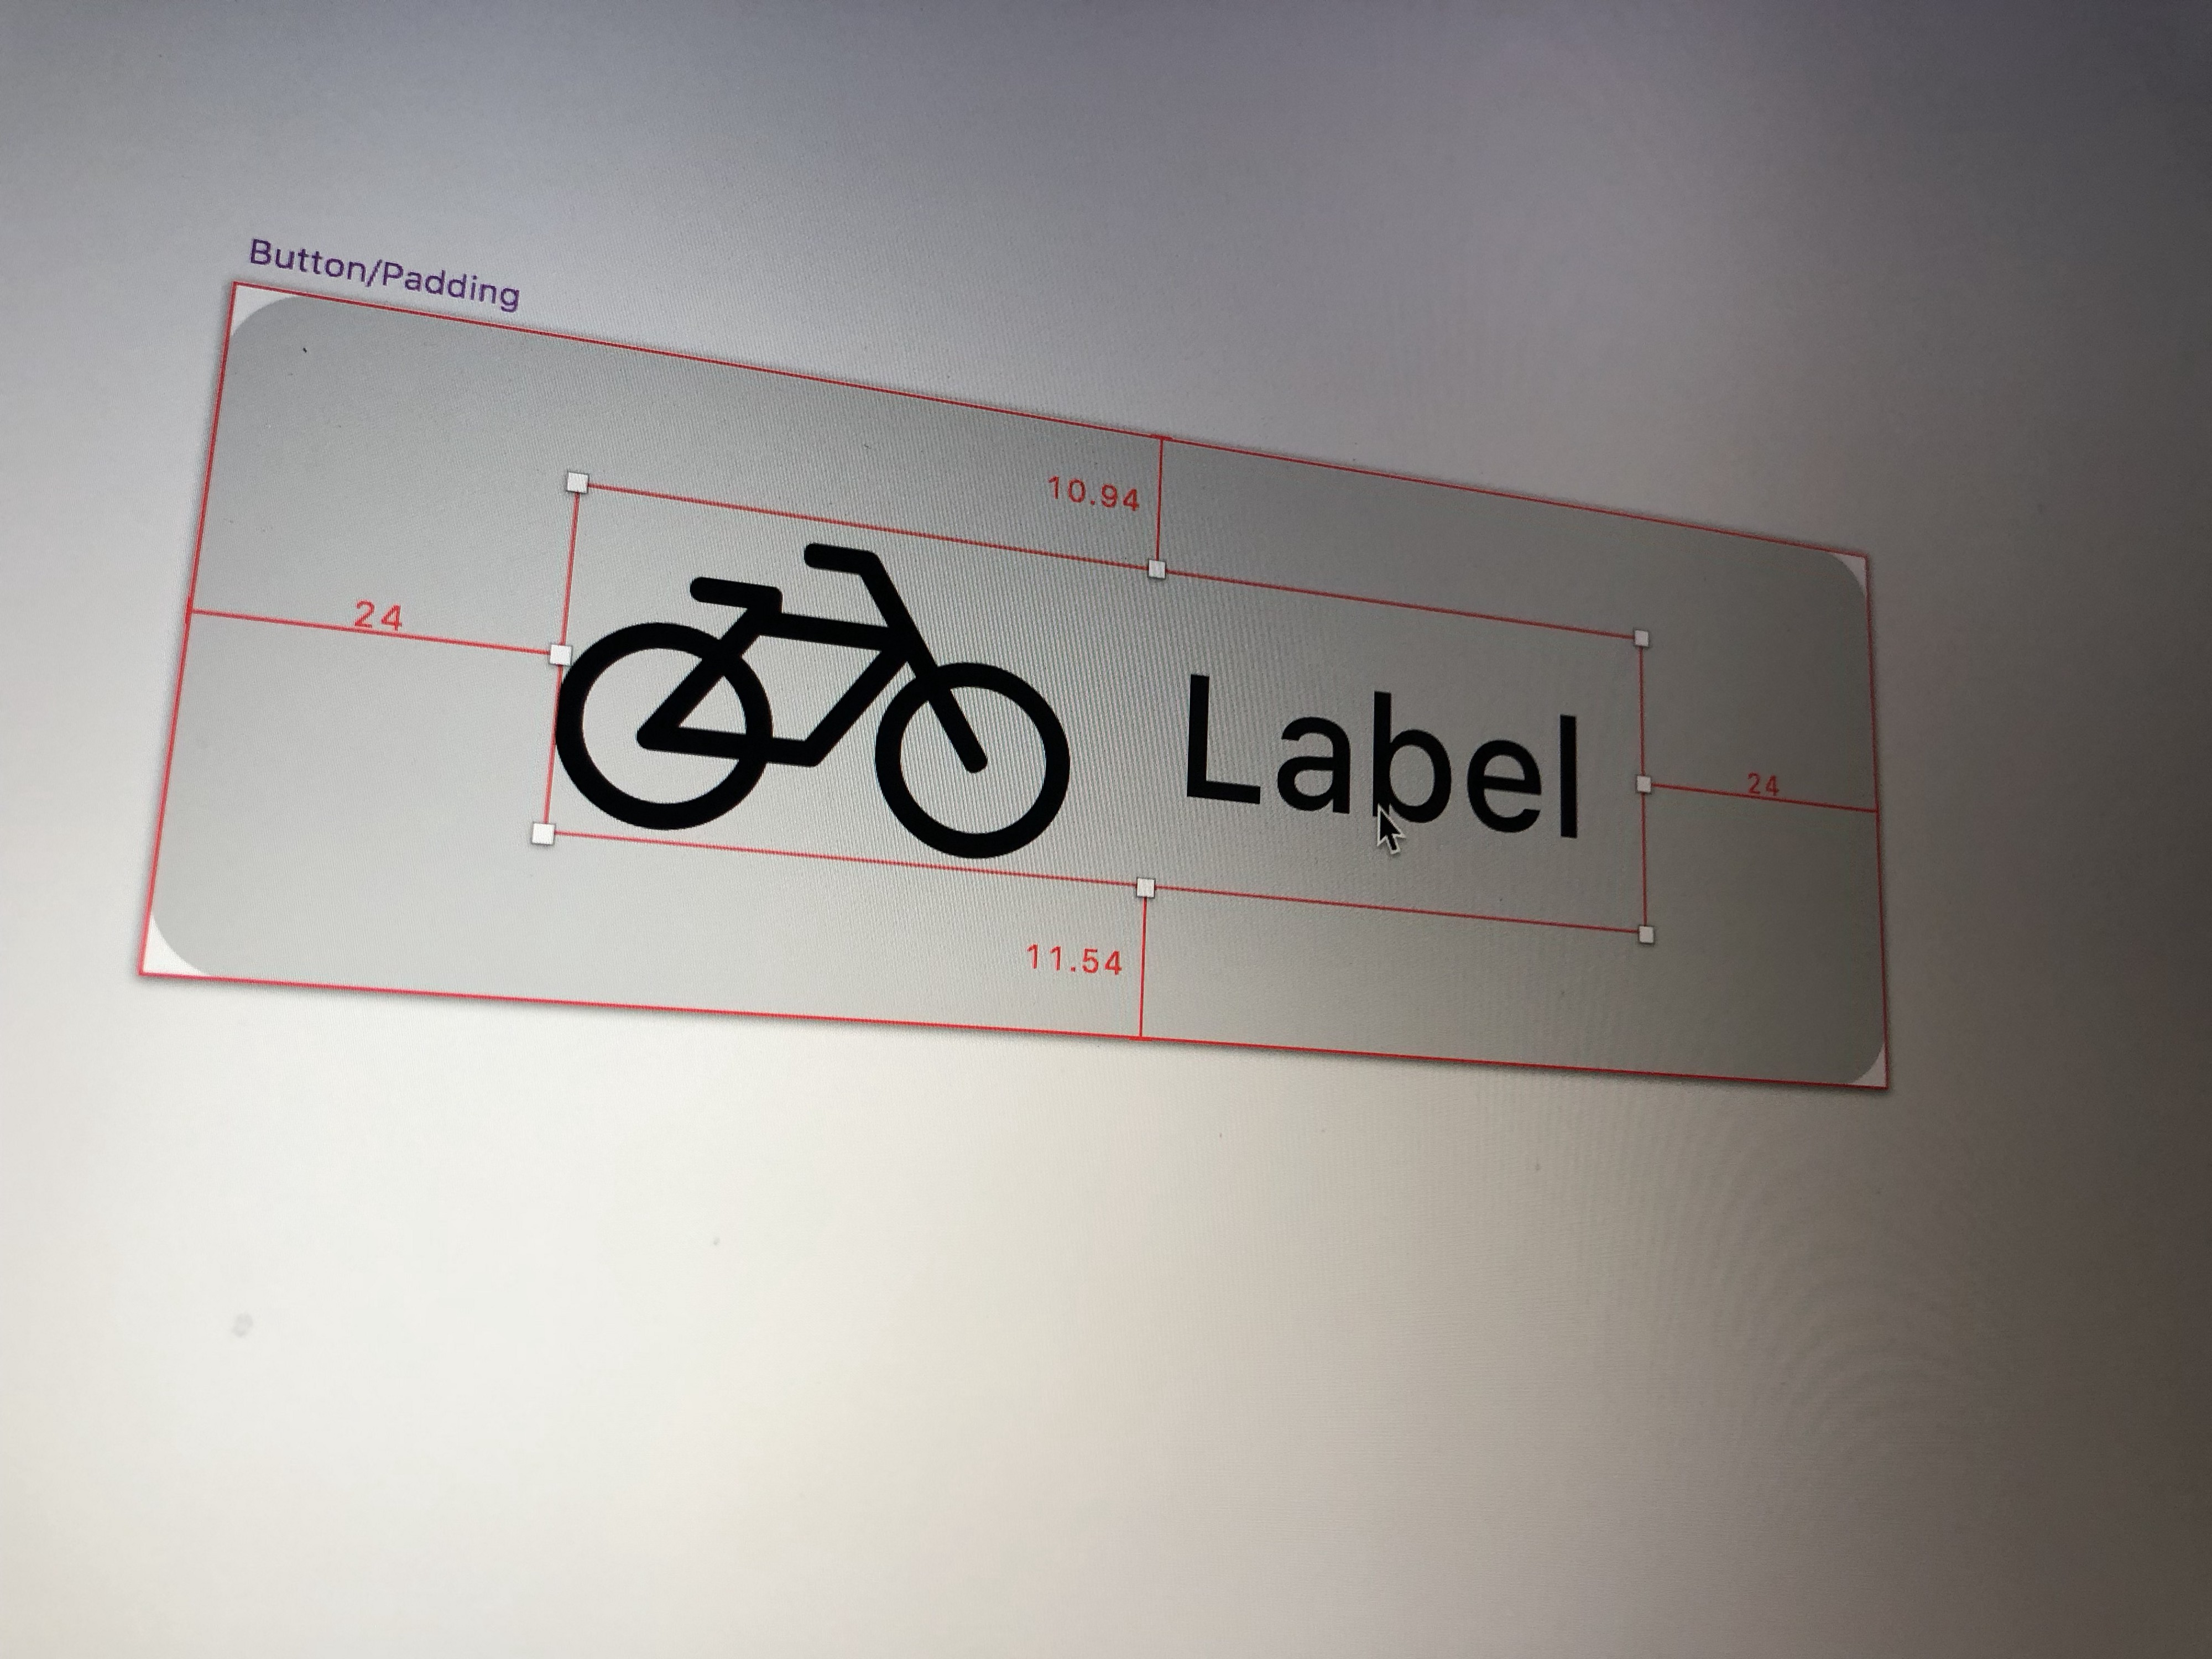 Sketch Hacks: Make a Resizable Button with Icon and Label